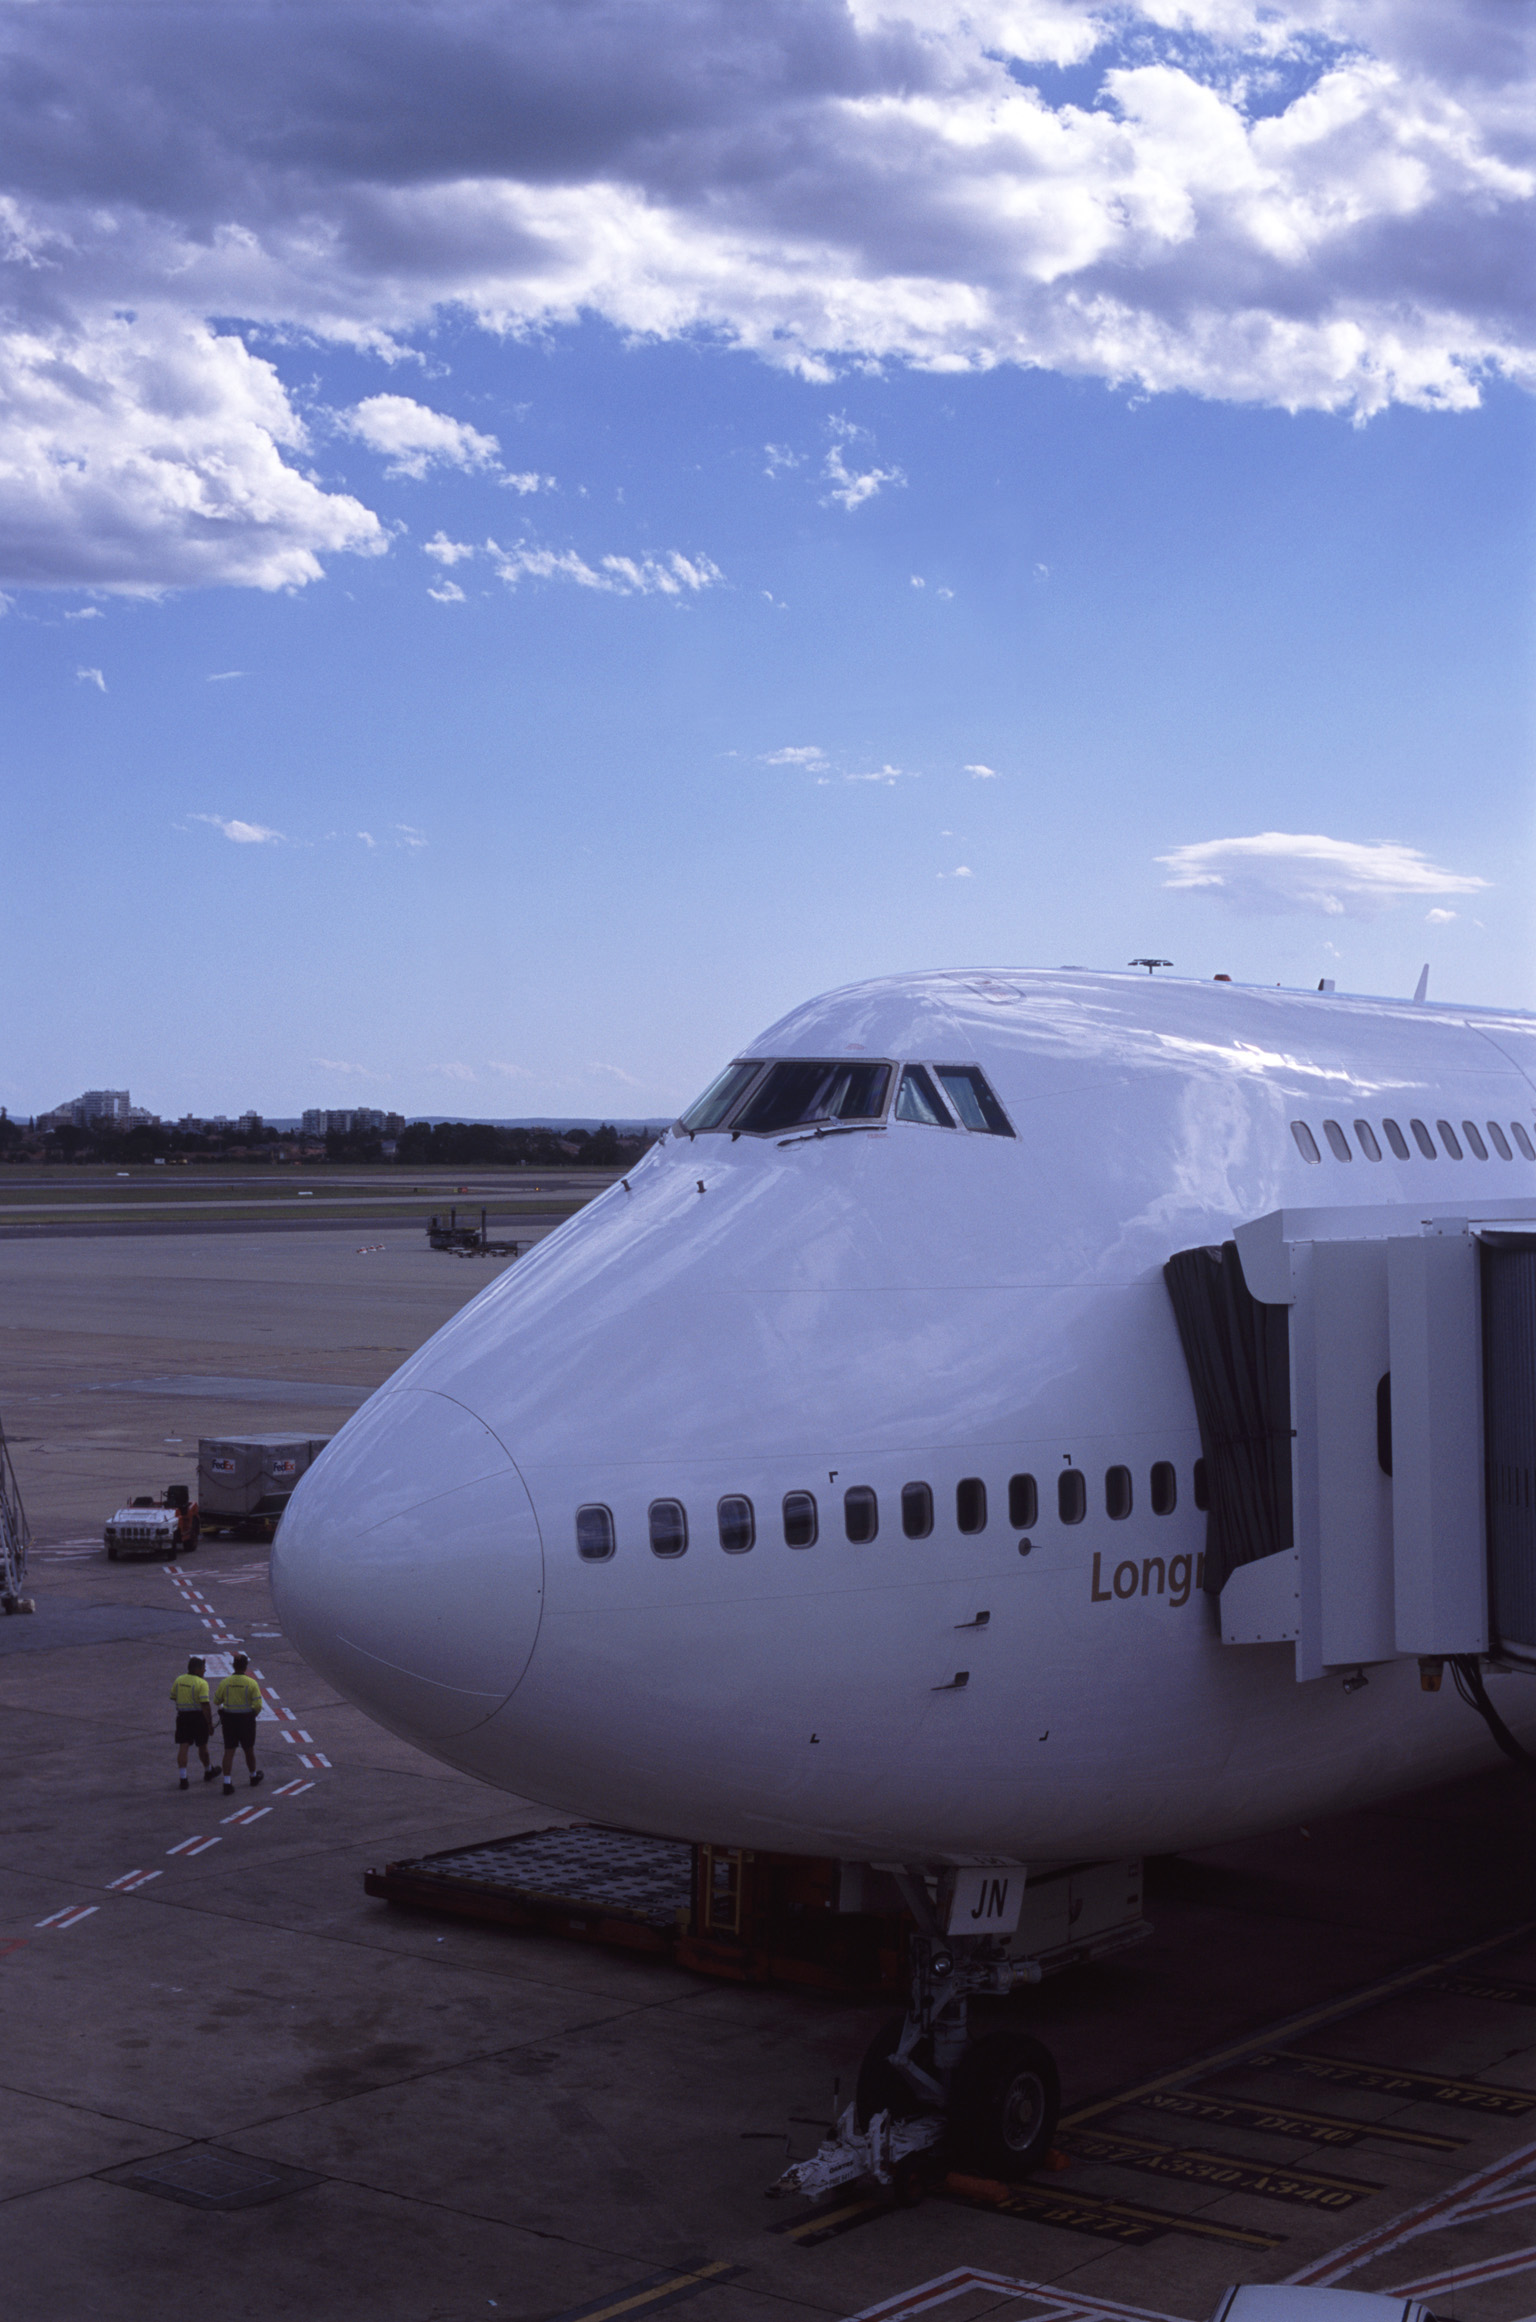 474 Jumbo aircraft loading for departure with a passenger skybridge attached to the side for embarkation as it stands on the apron at the airport